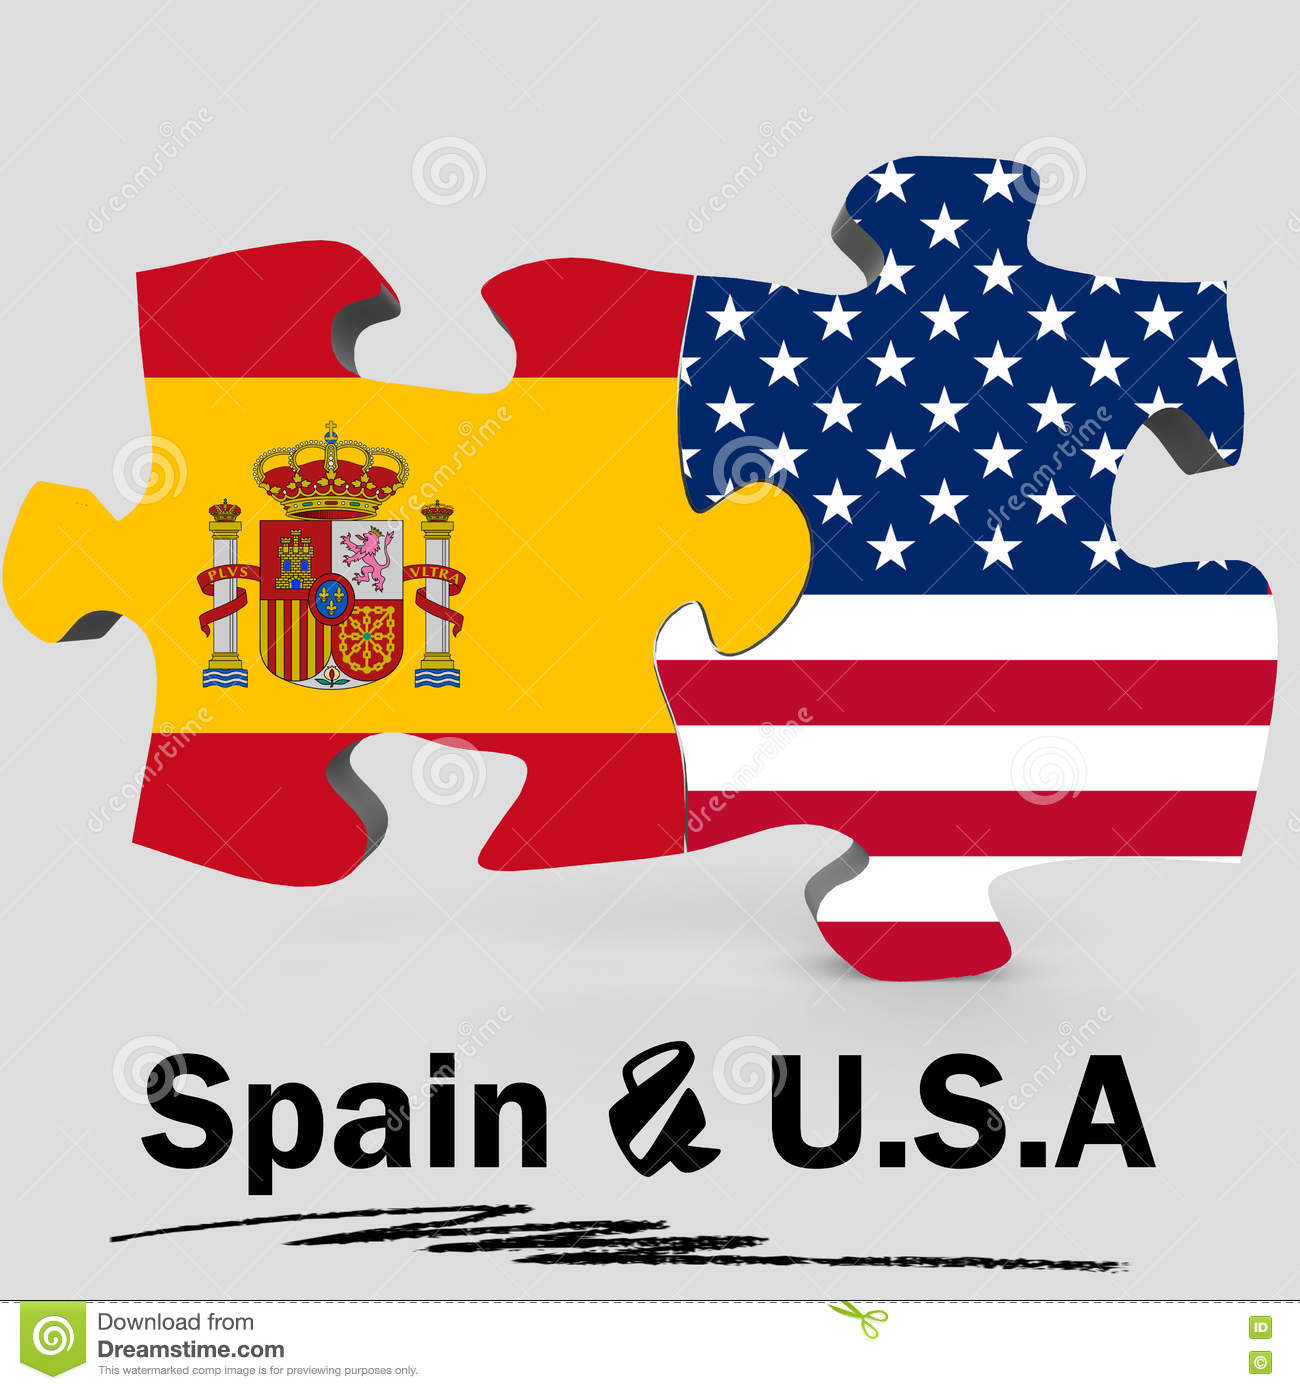 USA And Spain Flags In Puzzle Stock Illustration - Illustration of ...